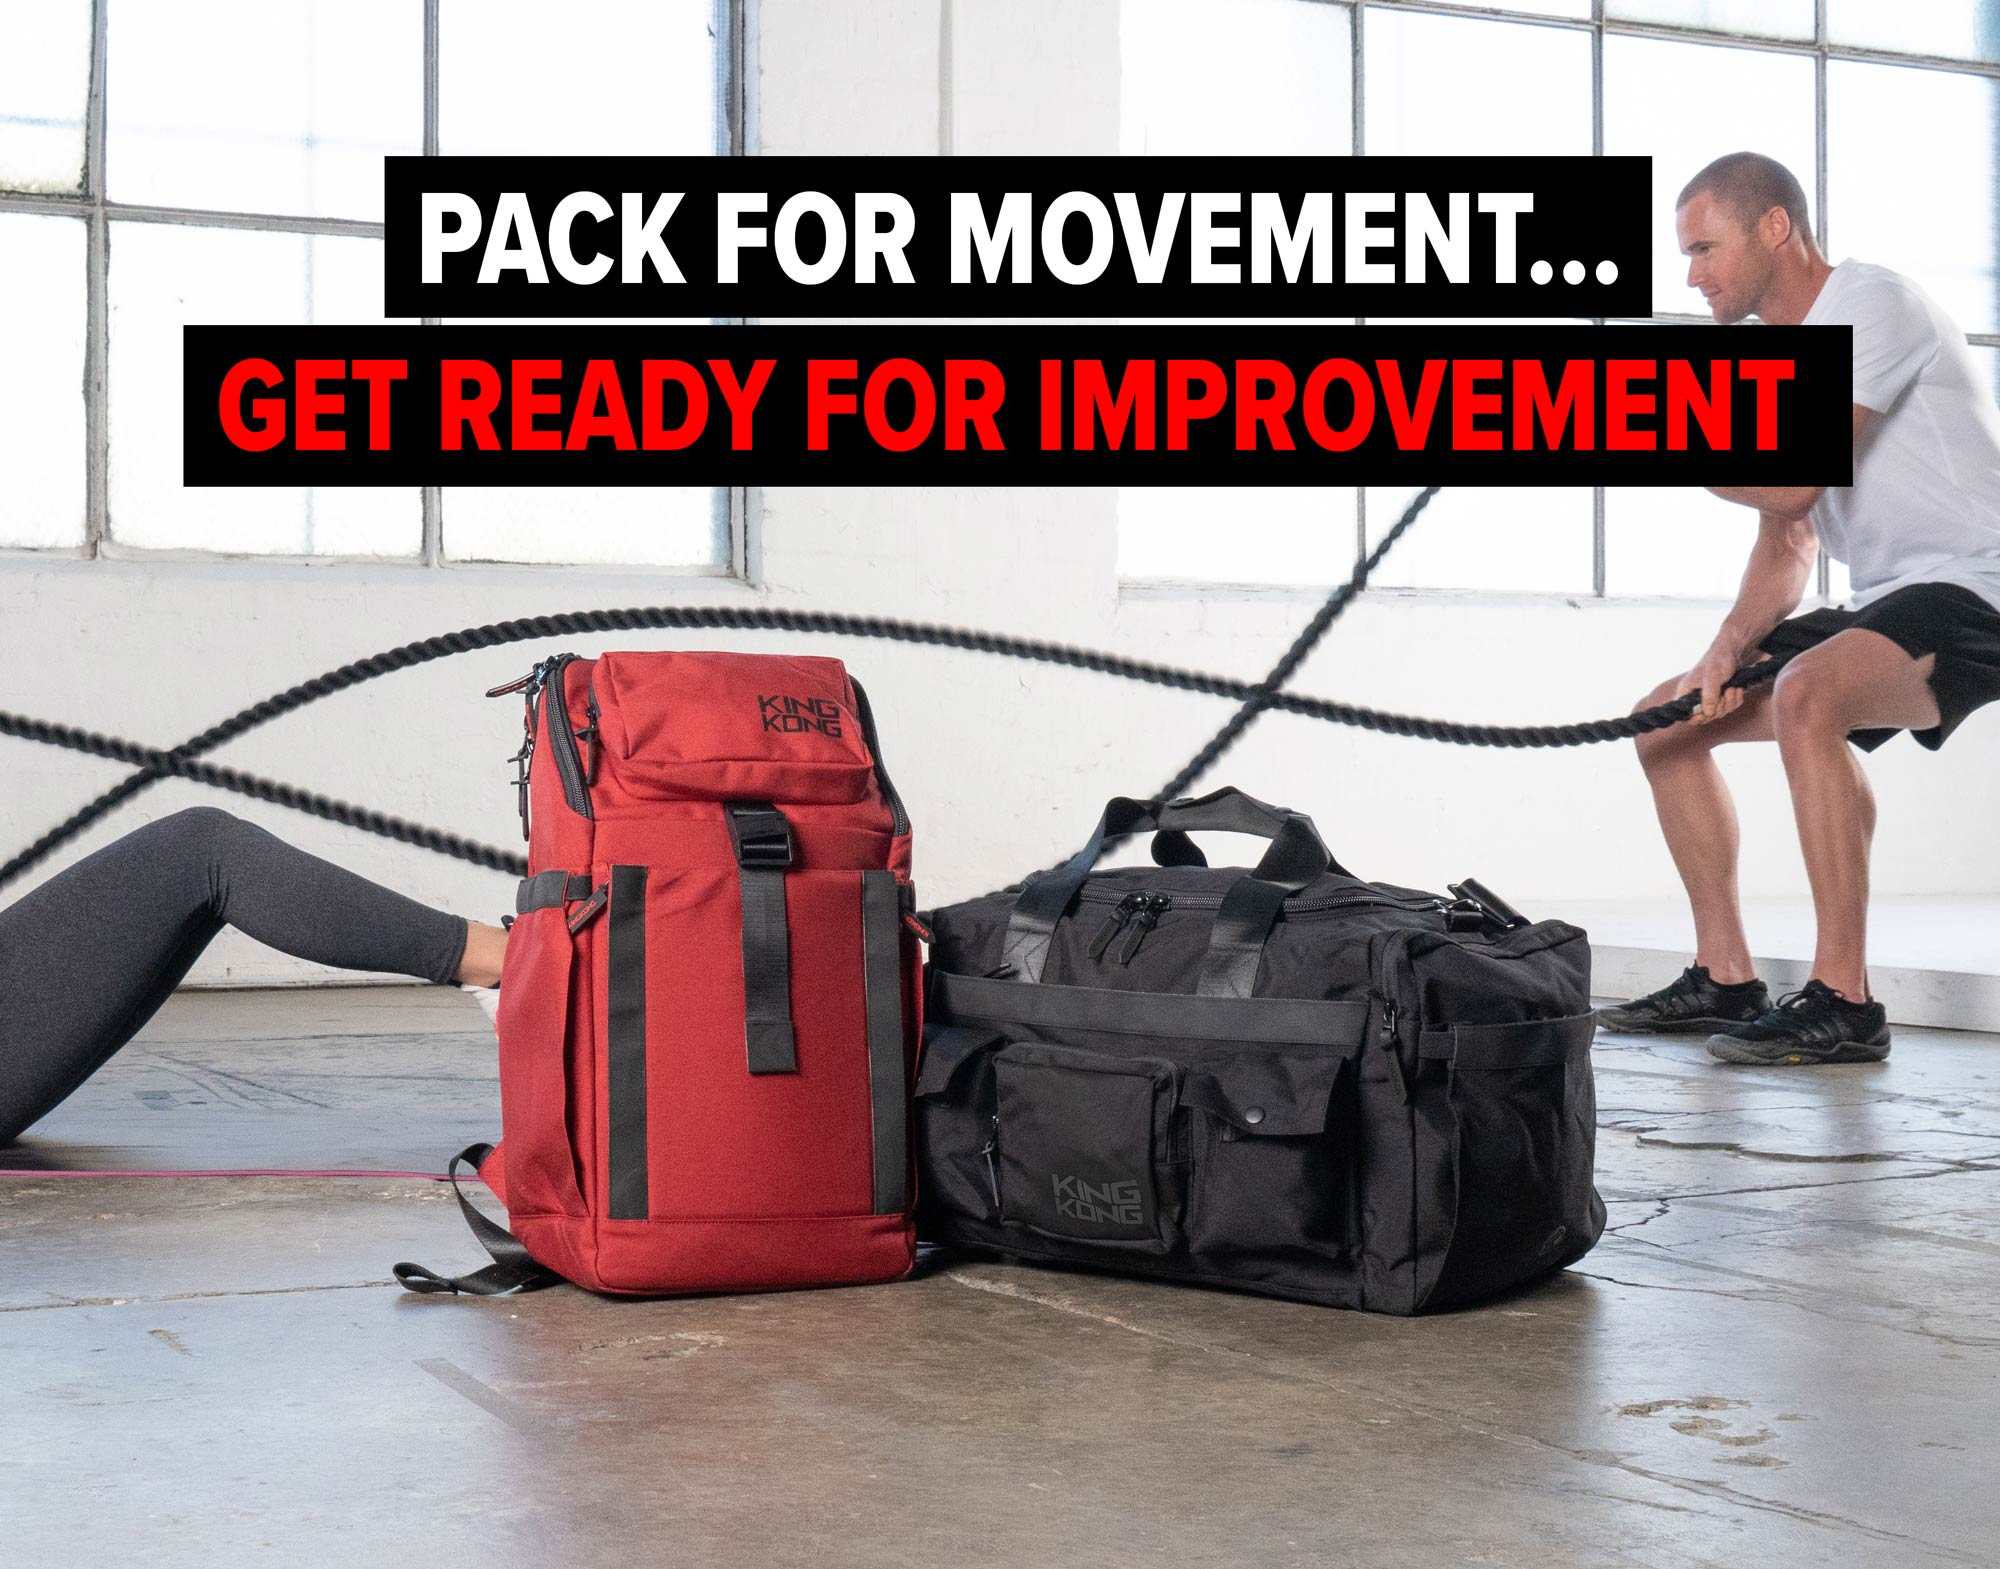 Pack for movement. Gear up for improvement.